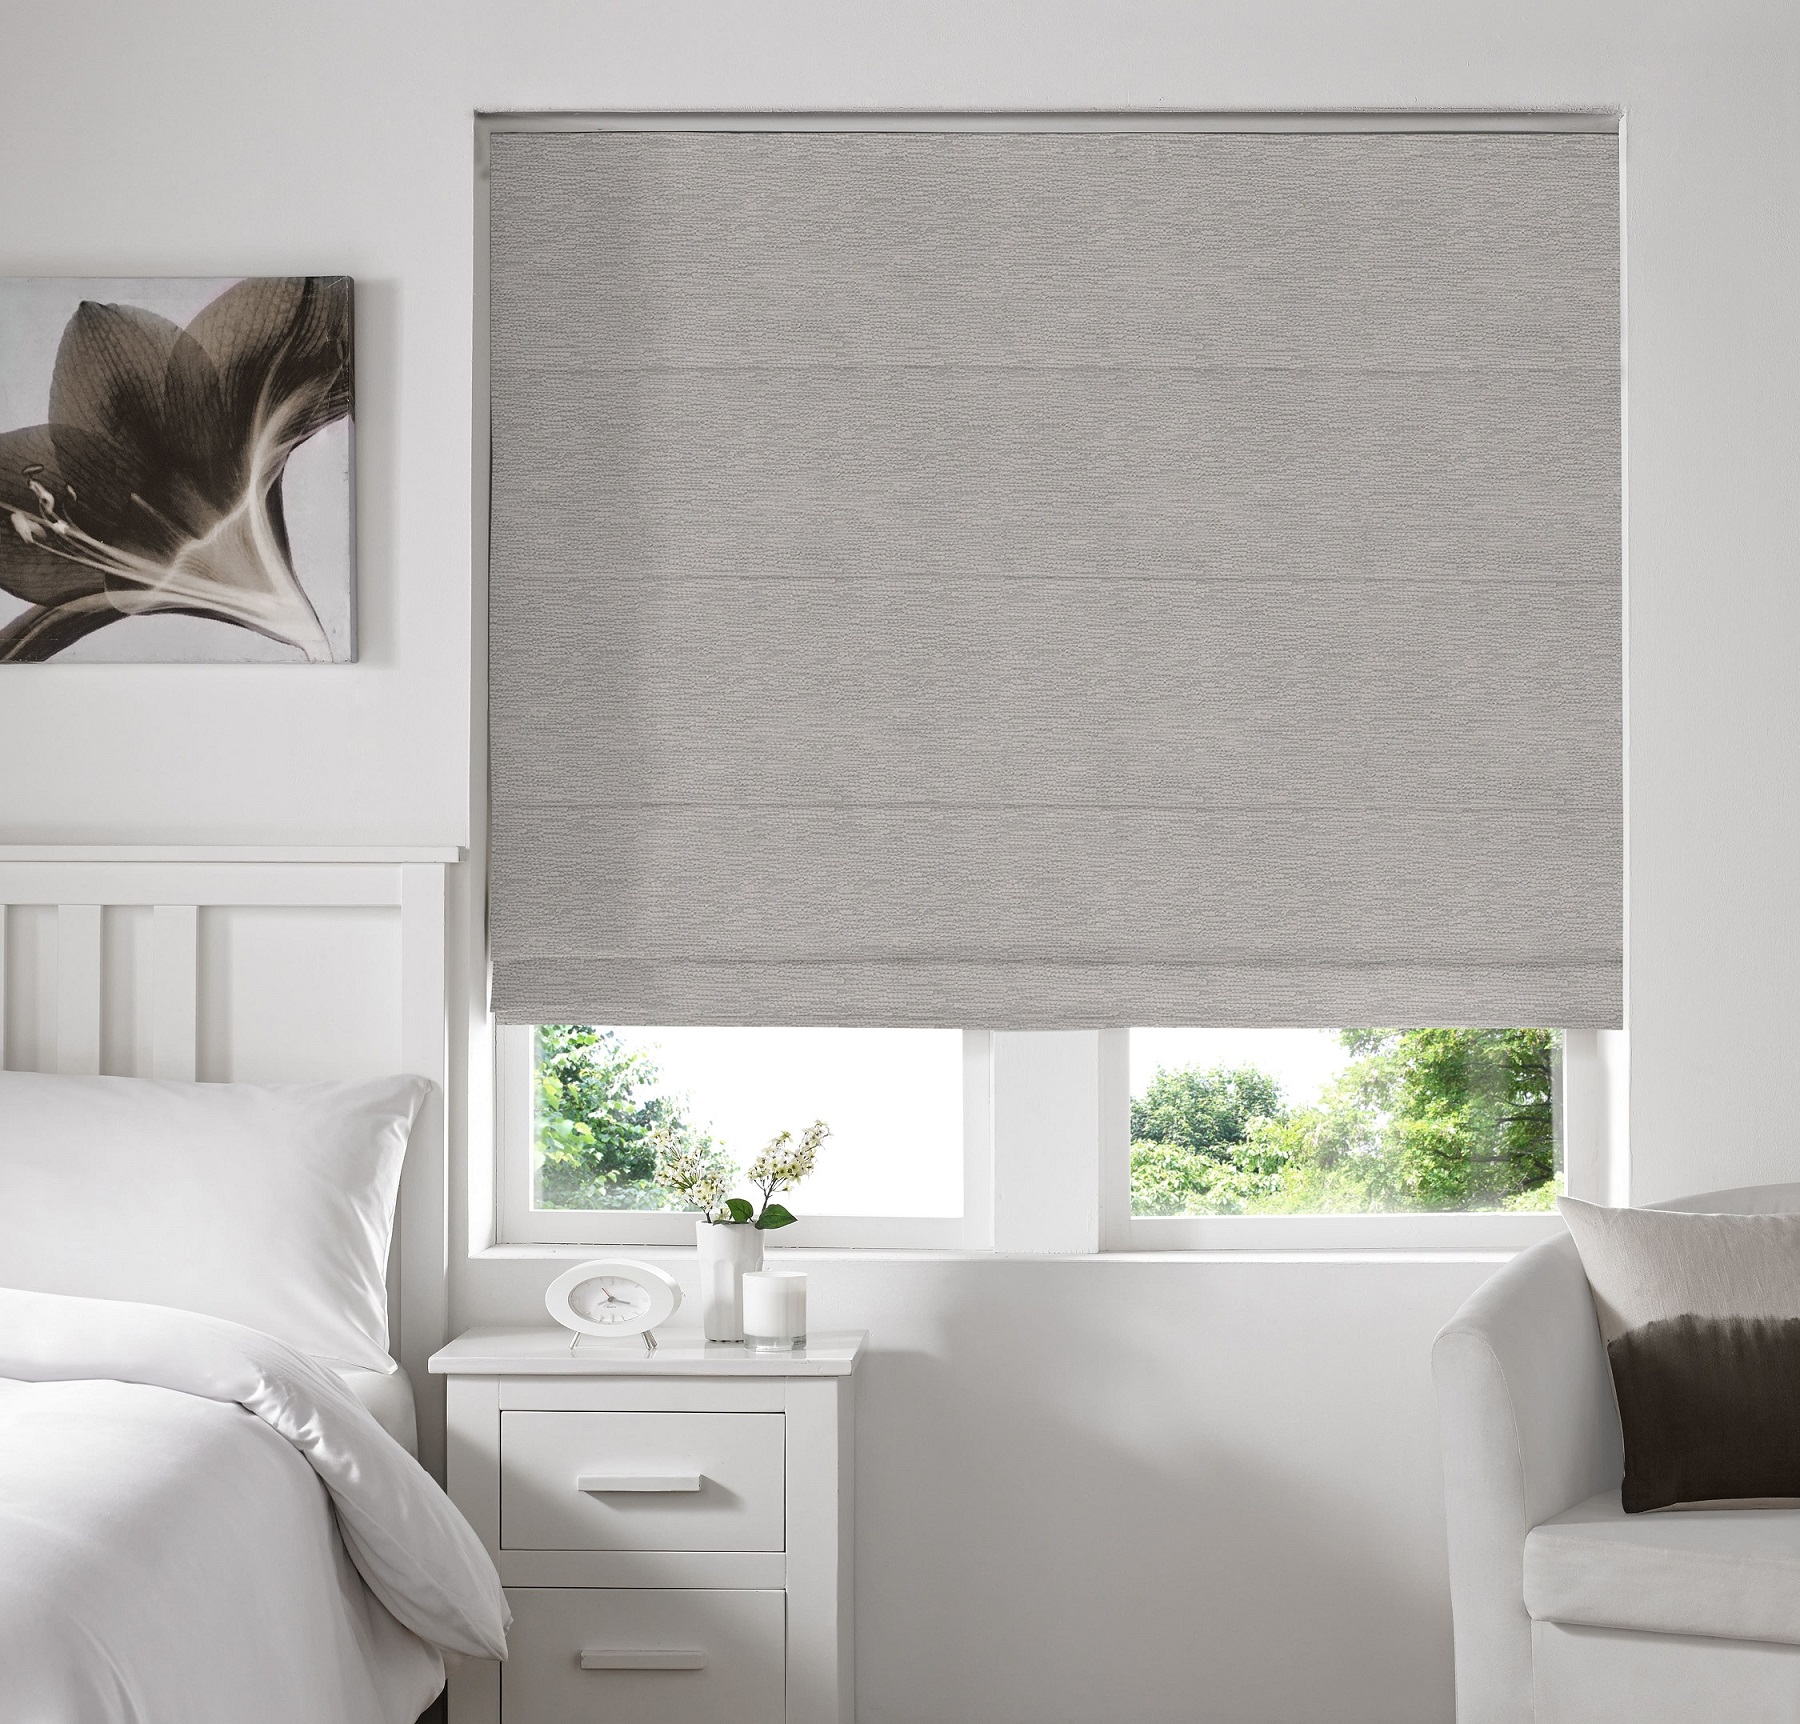 roman blinds hull, blackout blinds hull